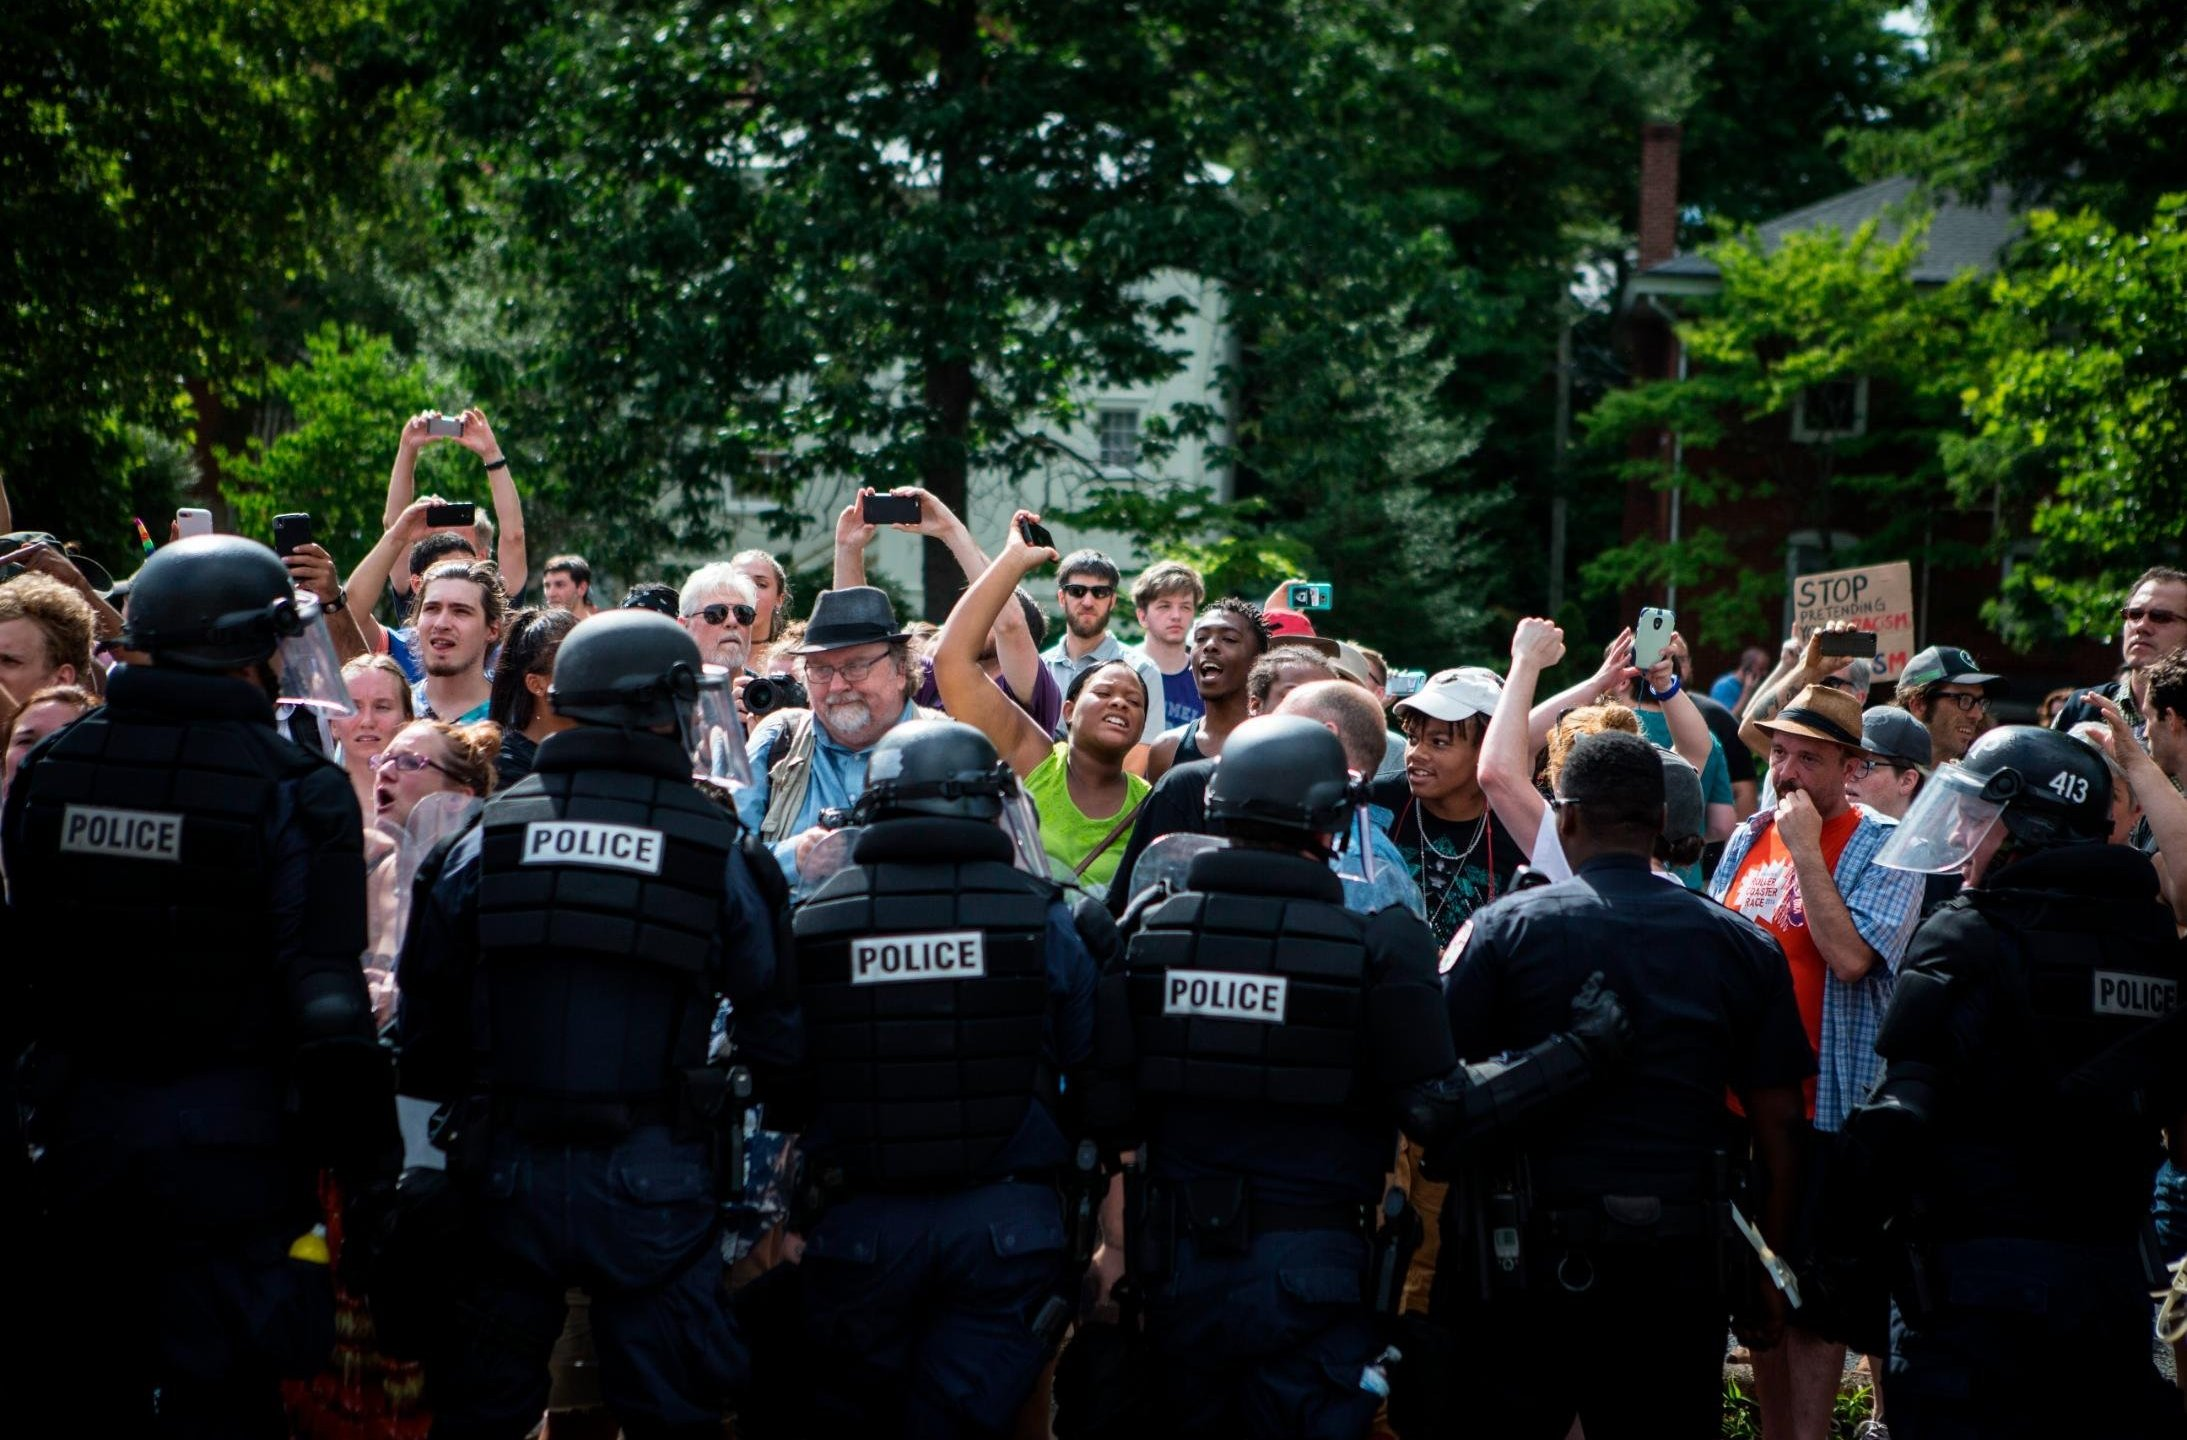 """The organizer of the deadly white nationalist rally in Charlottesville, Virginia, last year has applied for a permit to hold a """"white civil rights rally"""" in front of the White House in August. (Credit: Chet Strange/Getty Images)"""